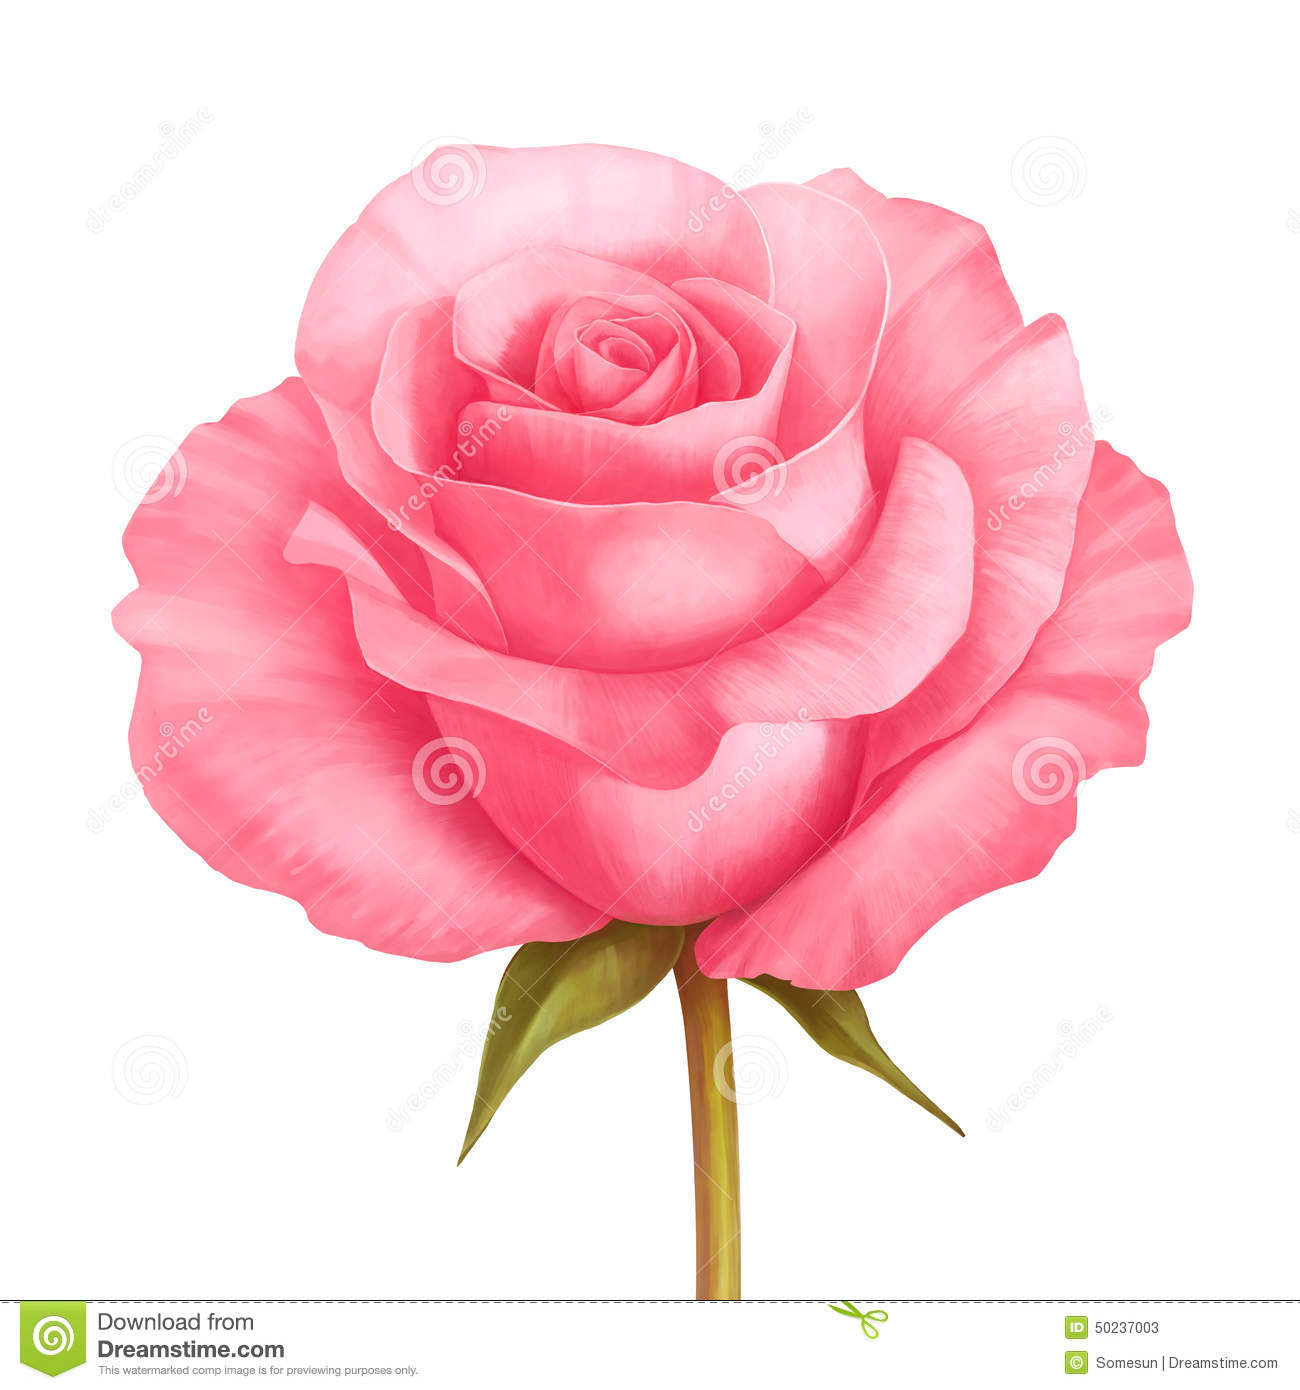 Vector rose pink flower illustration isolated on white stock vector download comp mightylinksfo